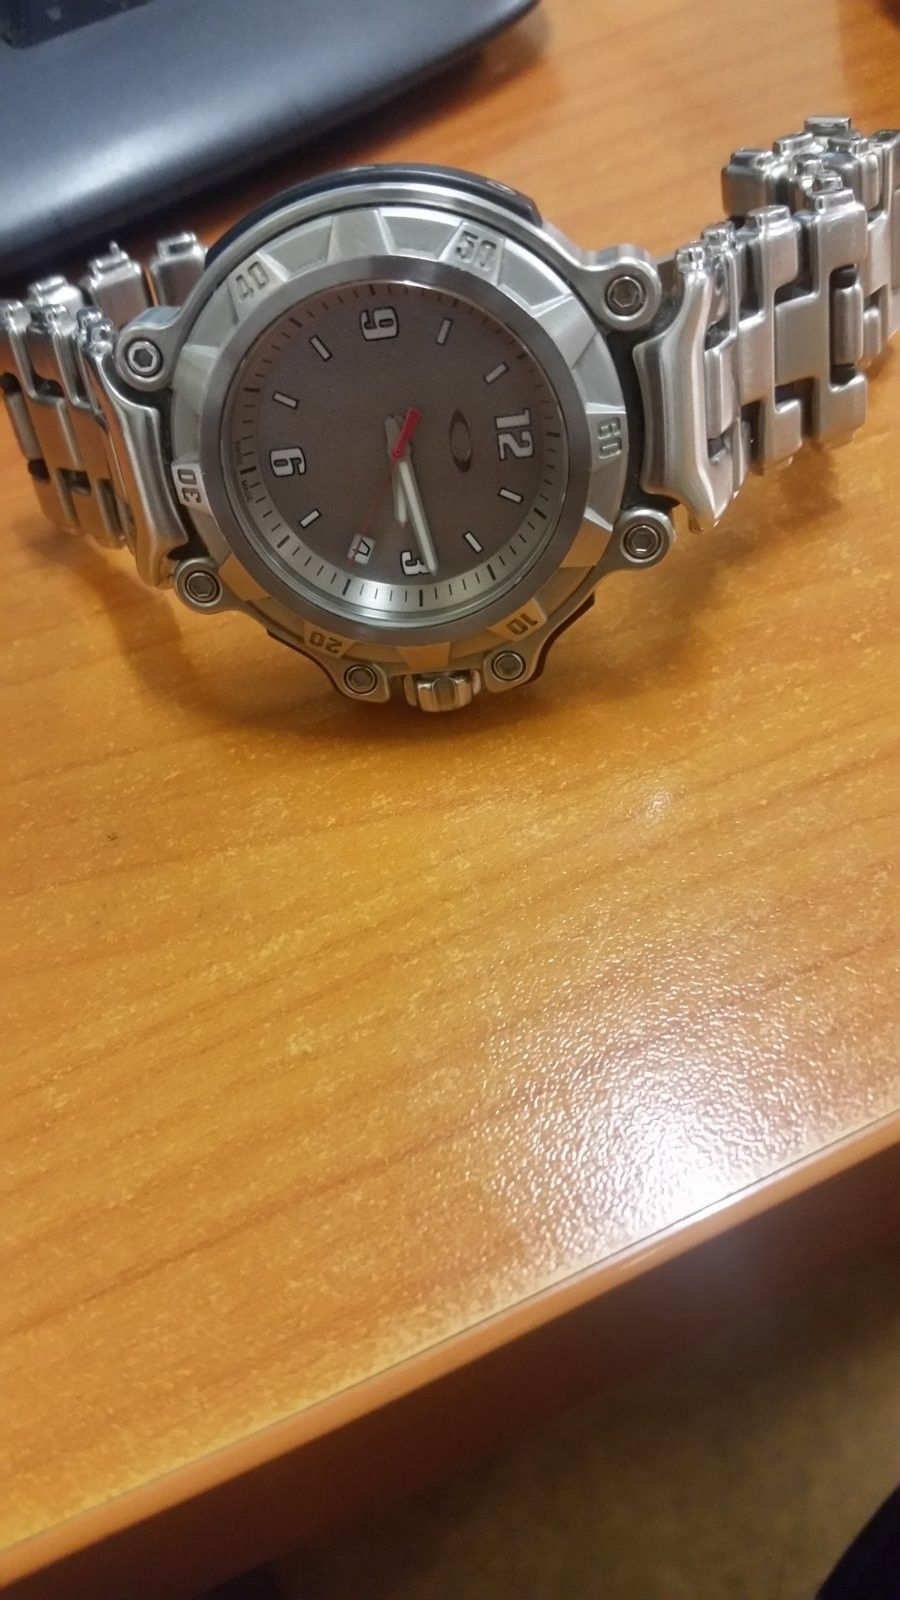 Latest addition to my watch collection - 20160204_151258.jpg